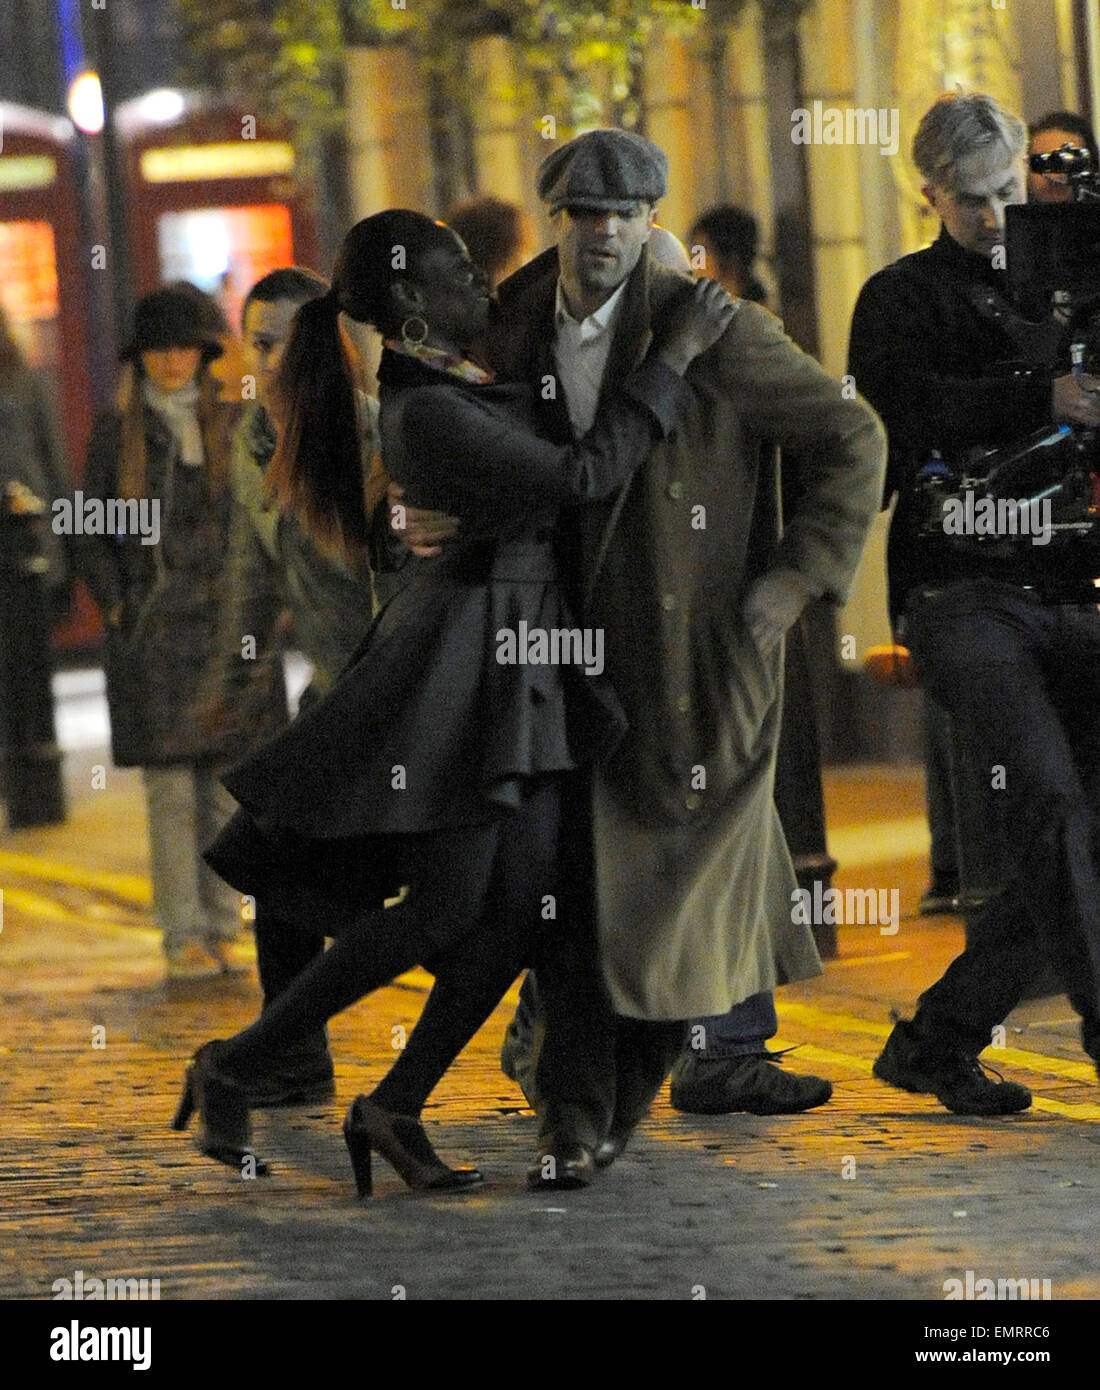 22.MARCH. LONDON  JASON STATHAM FILMING SCENES FOR HIS NEW FILM HUMMINGBIRD IN SOHO AT 2.30AM, WHERE HE ATTACKS Stock Photo